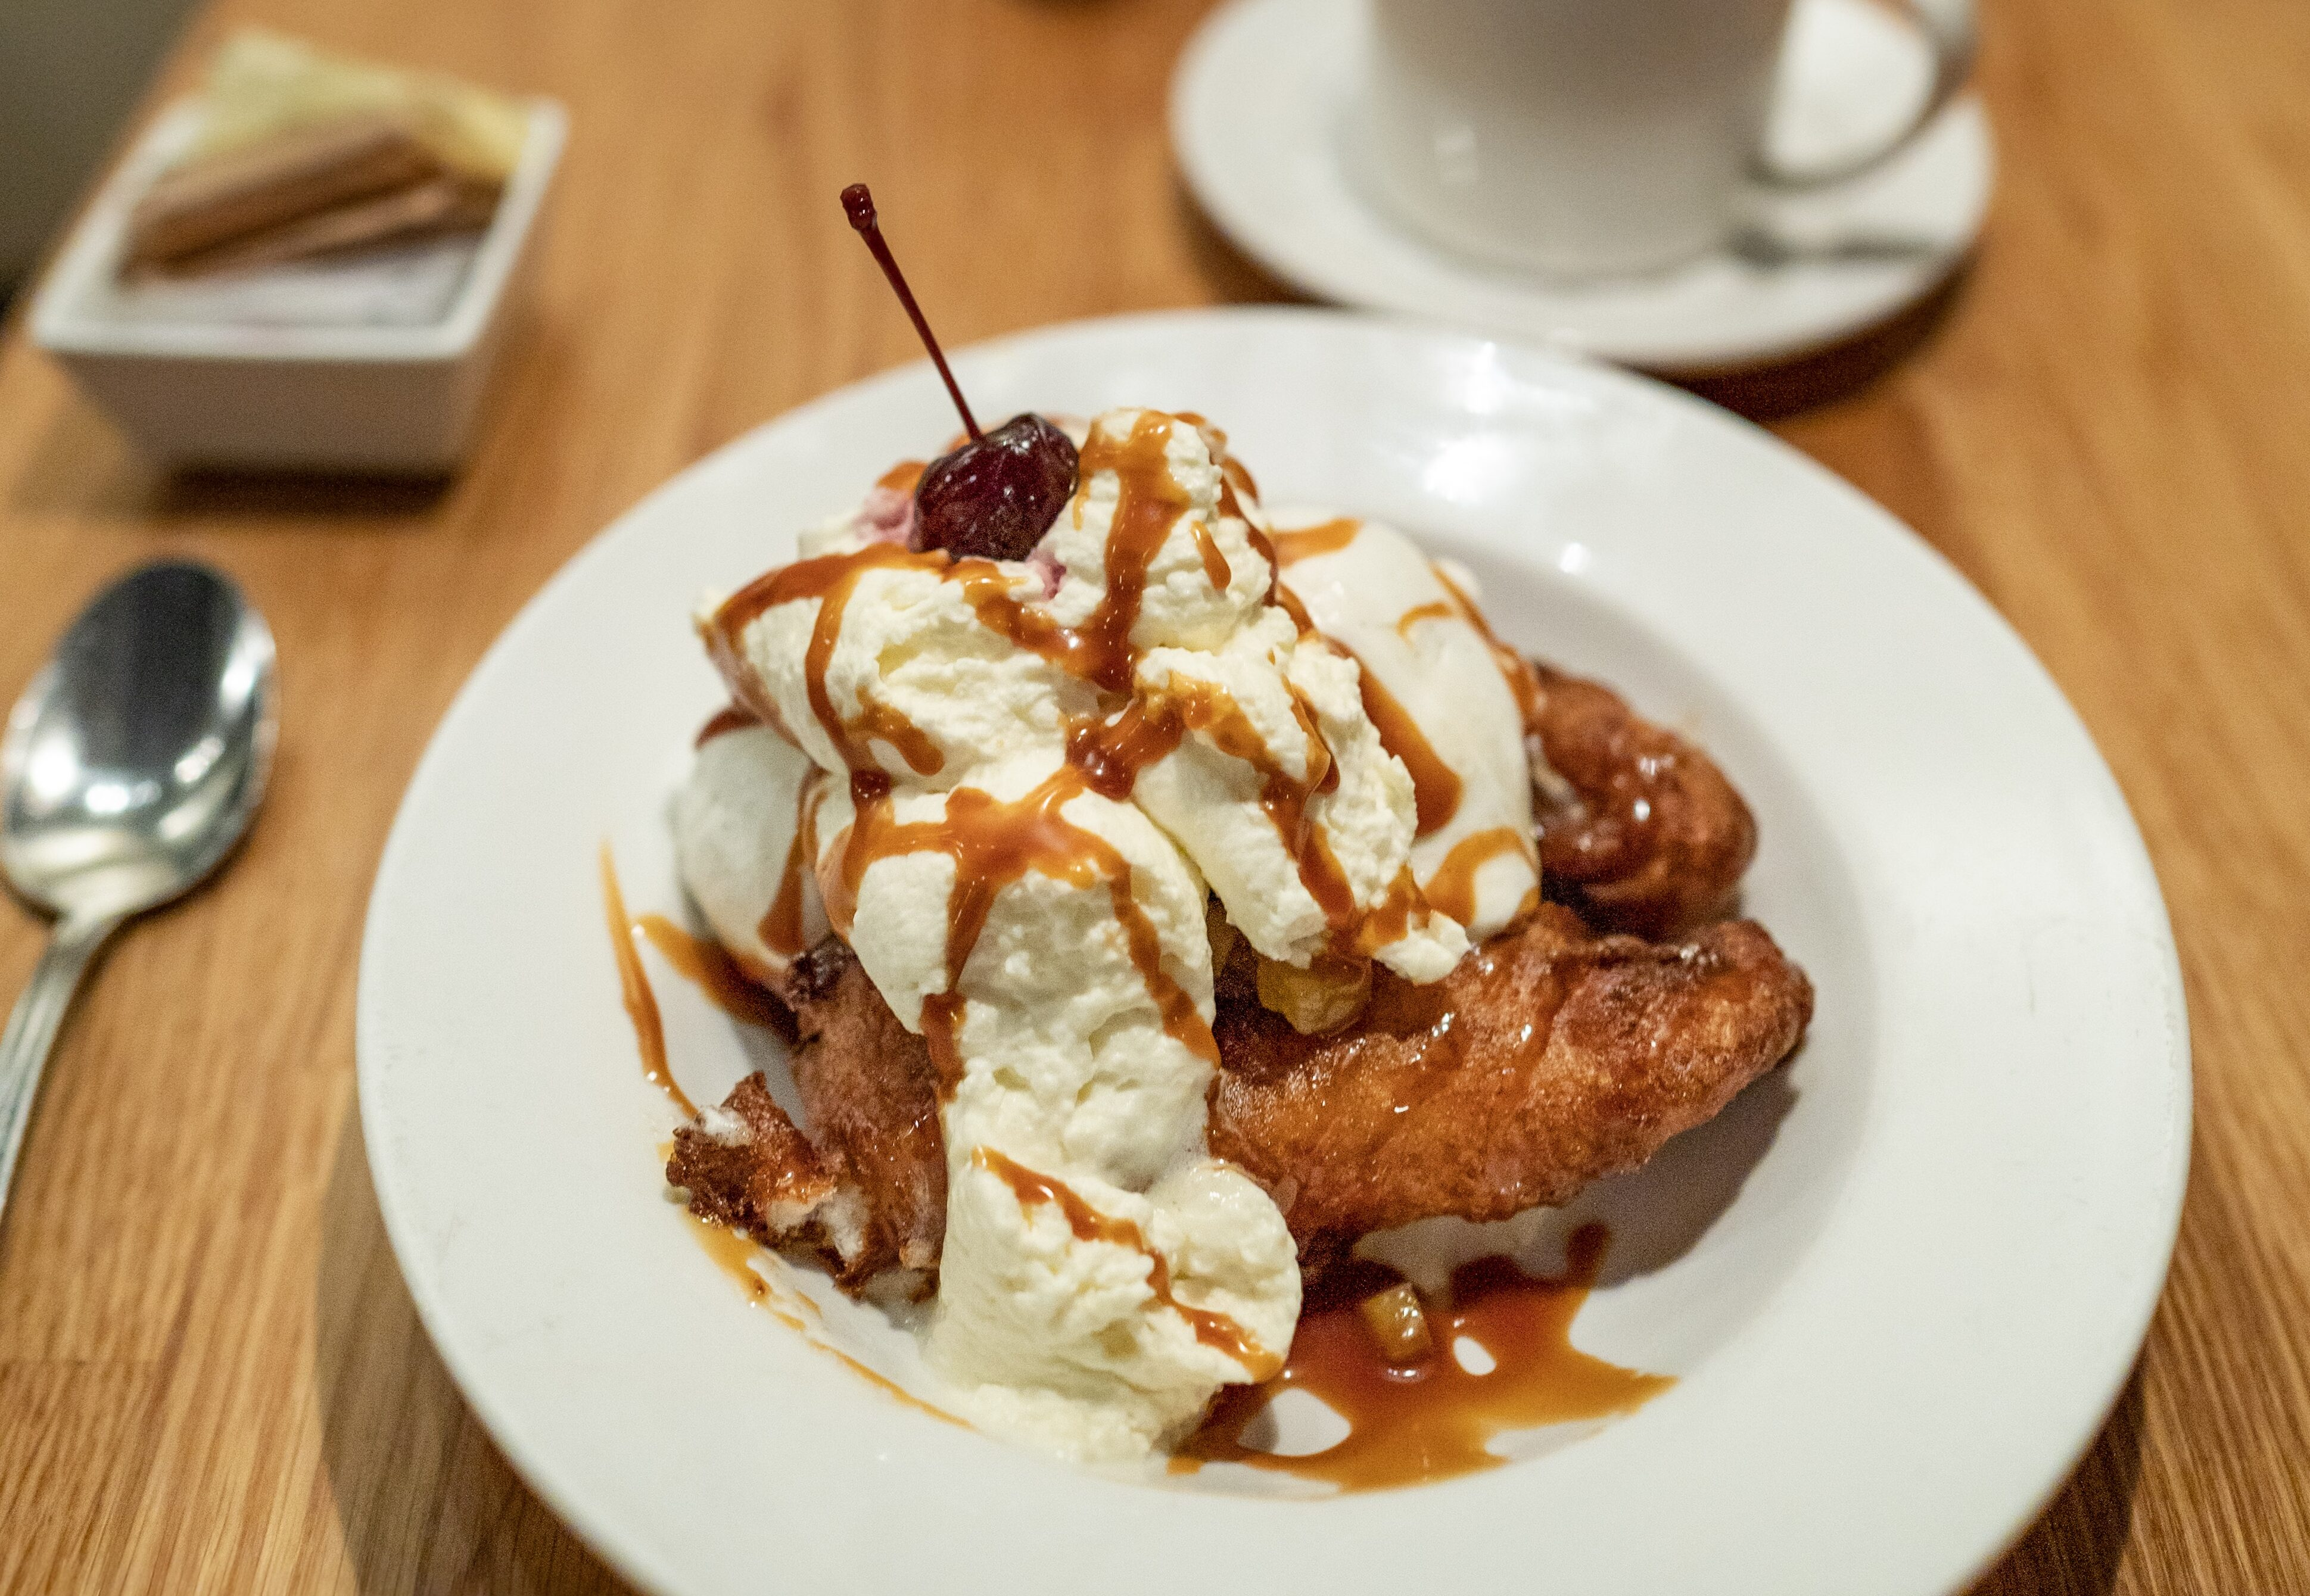 Fried Big Island Candy Apple Banana Split at 12th Ave Grill